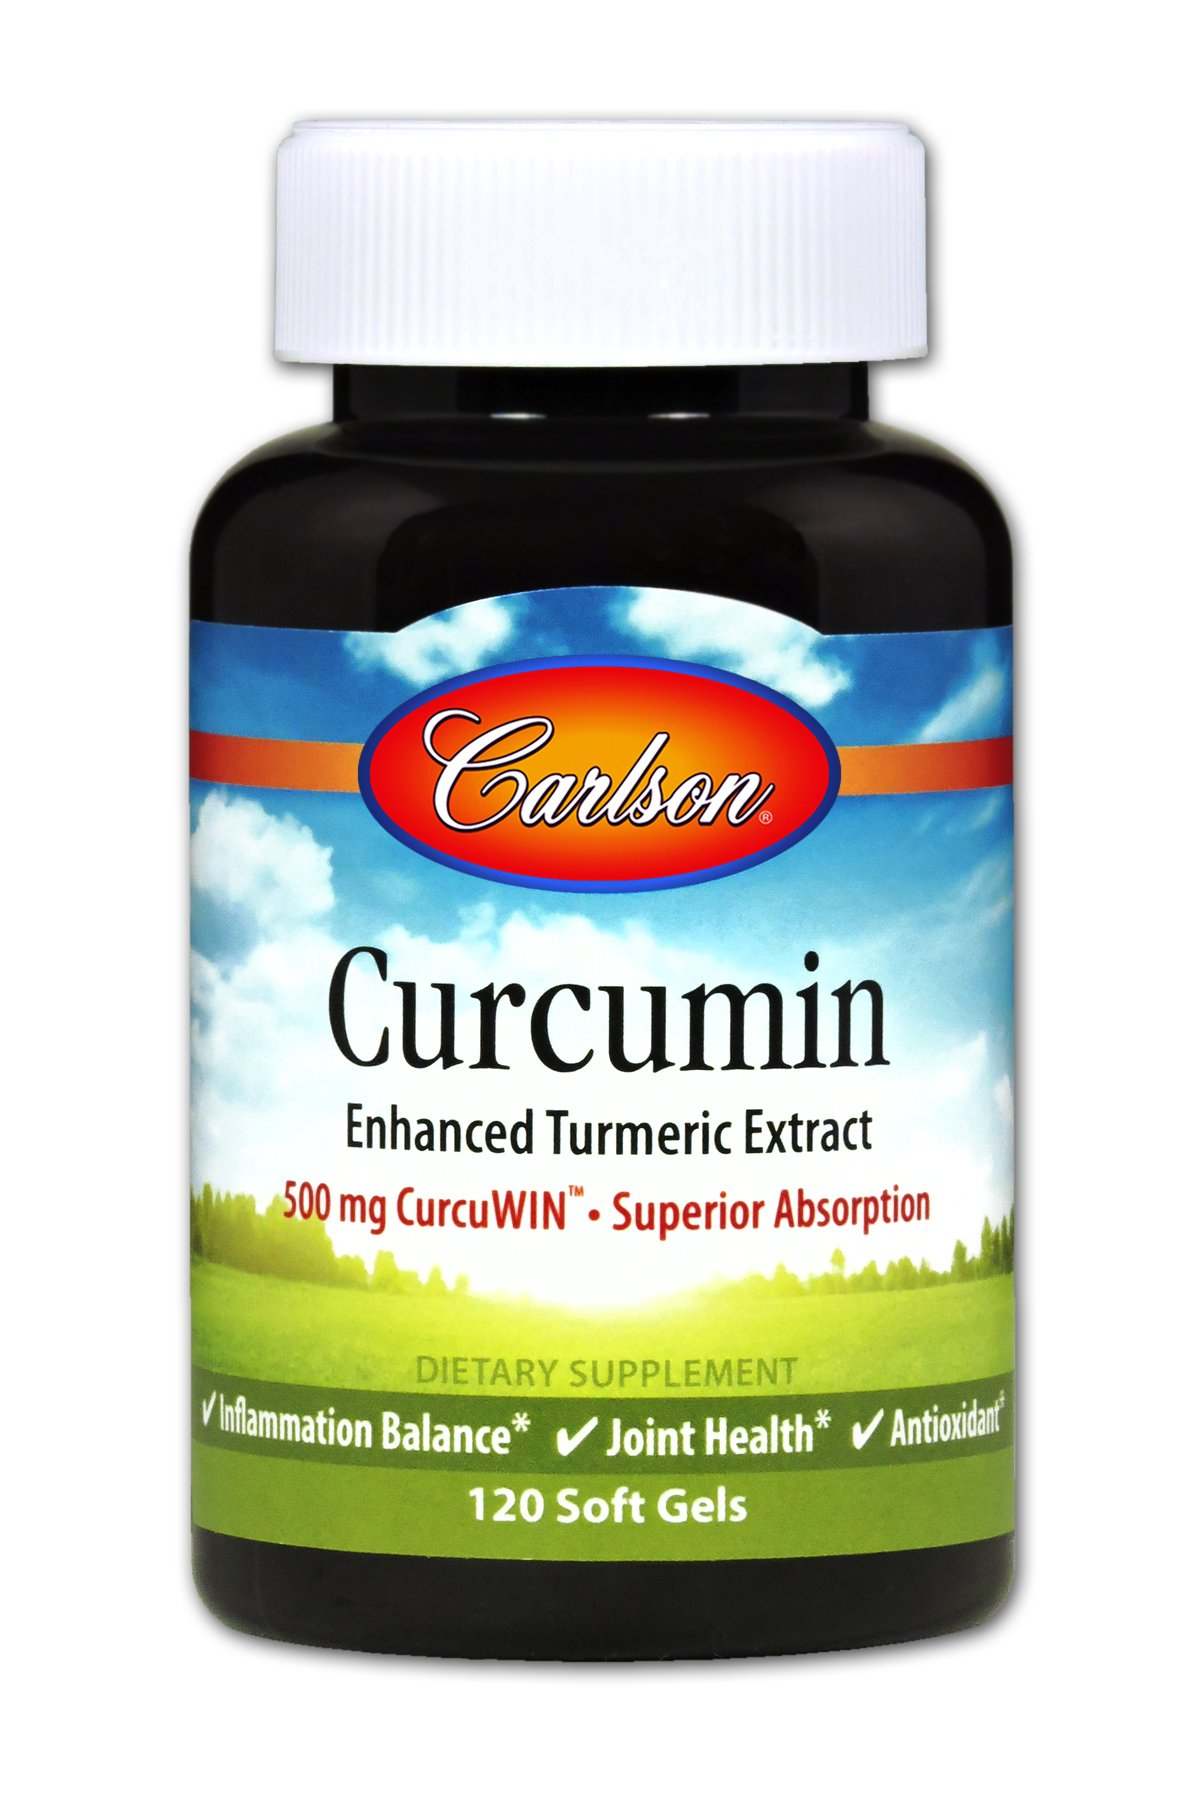 Carlson - Curcumin Enhanced Turmeric Extract, 500 mg CurcuWIN - Superior Absorption, Inflammation Balance & Joint Health, Antioxidant, 120 Soft gels